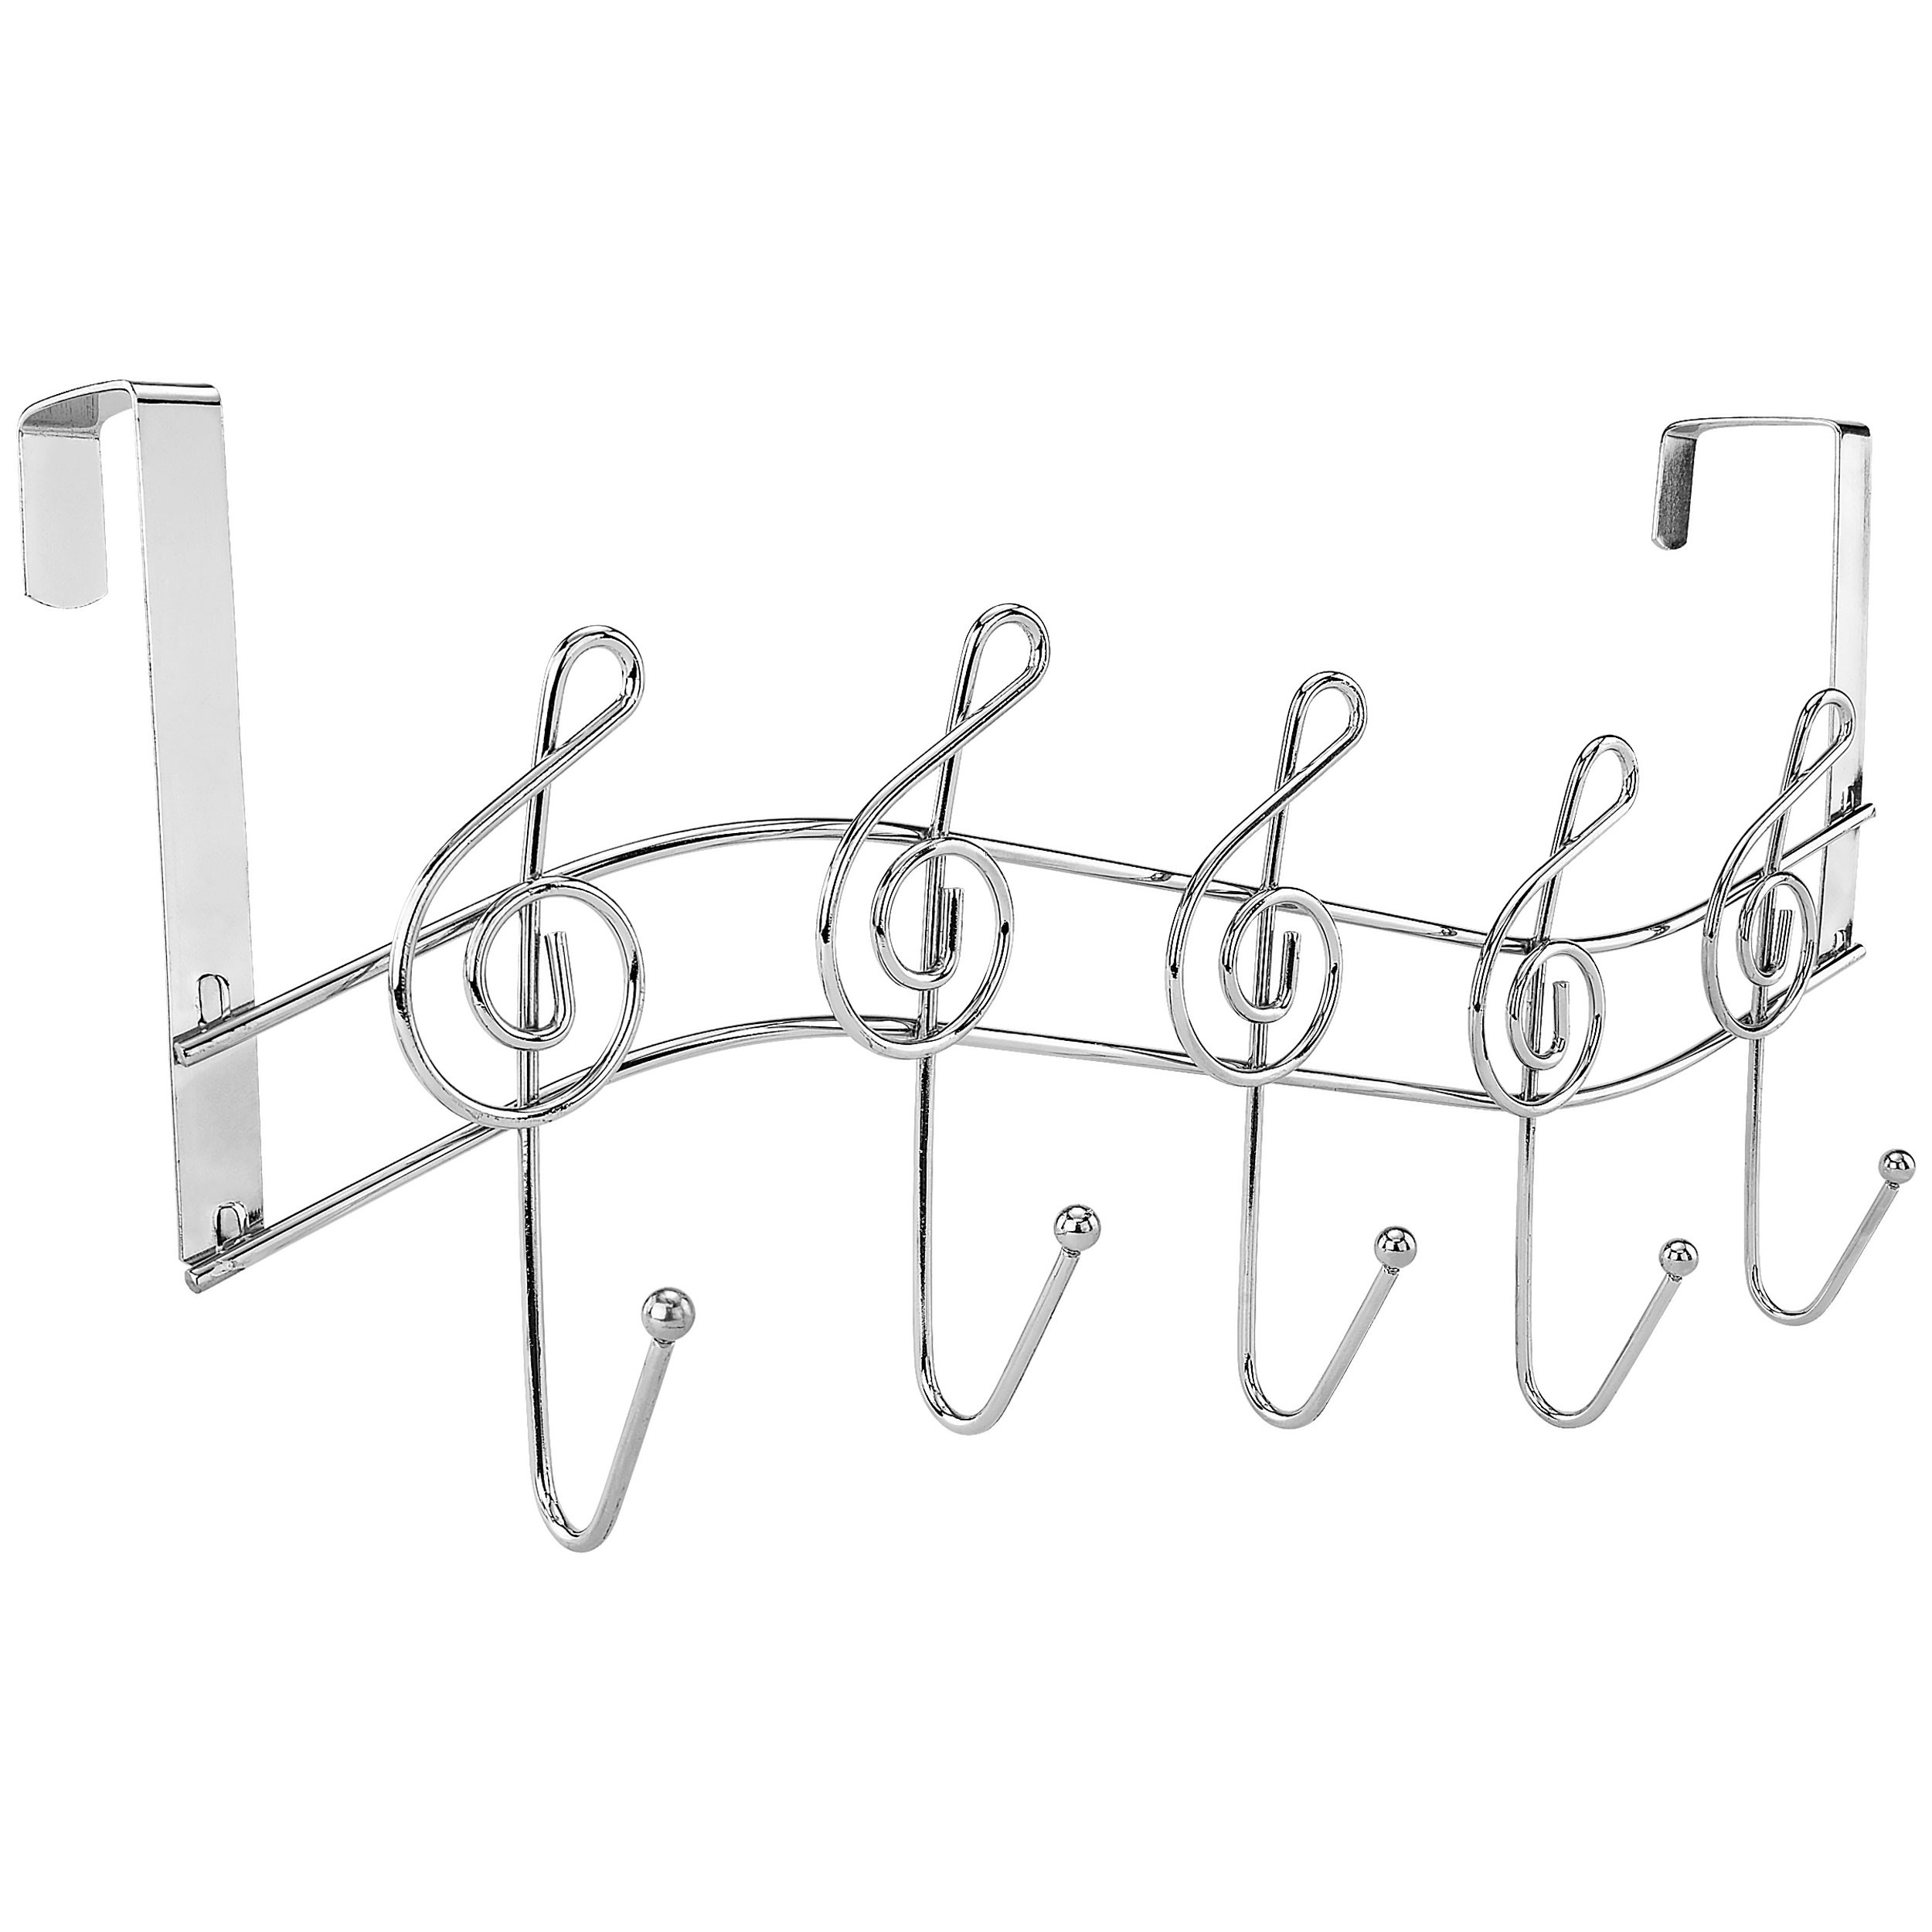 Southern Homewares Music Note Treble Clef Shape Over The Door Metal Rack, 5 Hanger Hooks Chrome Plated